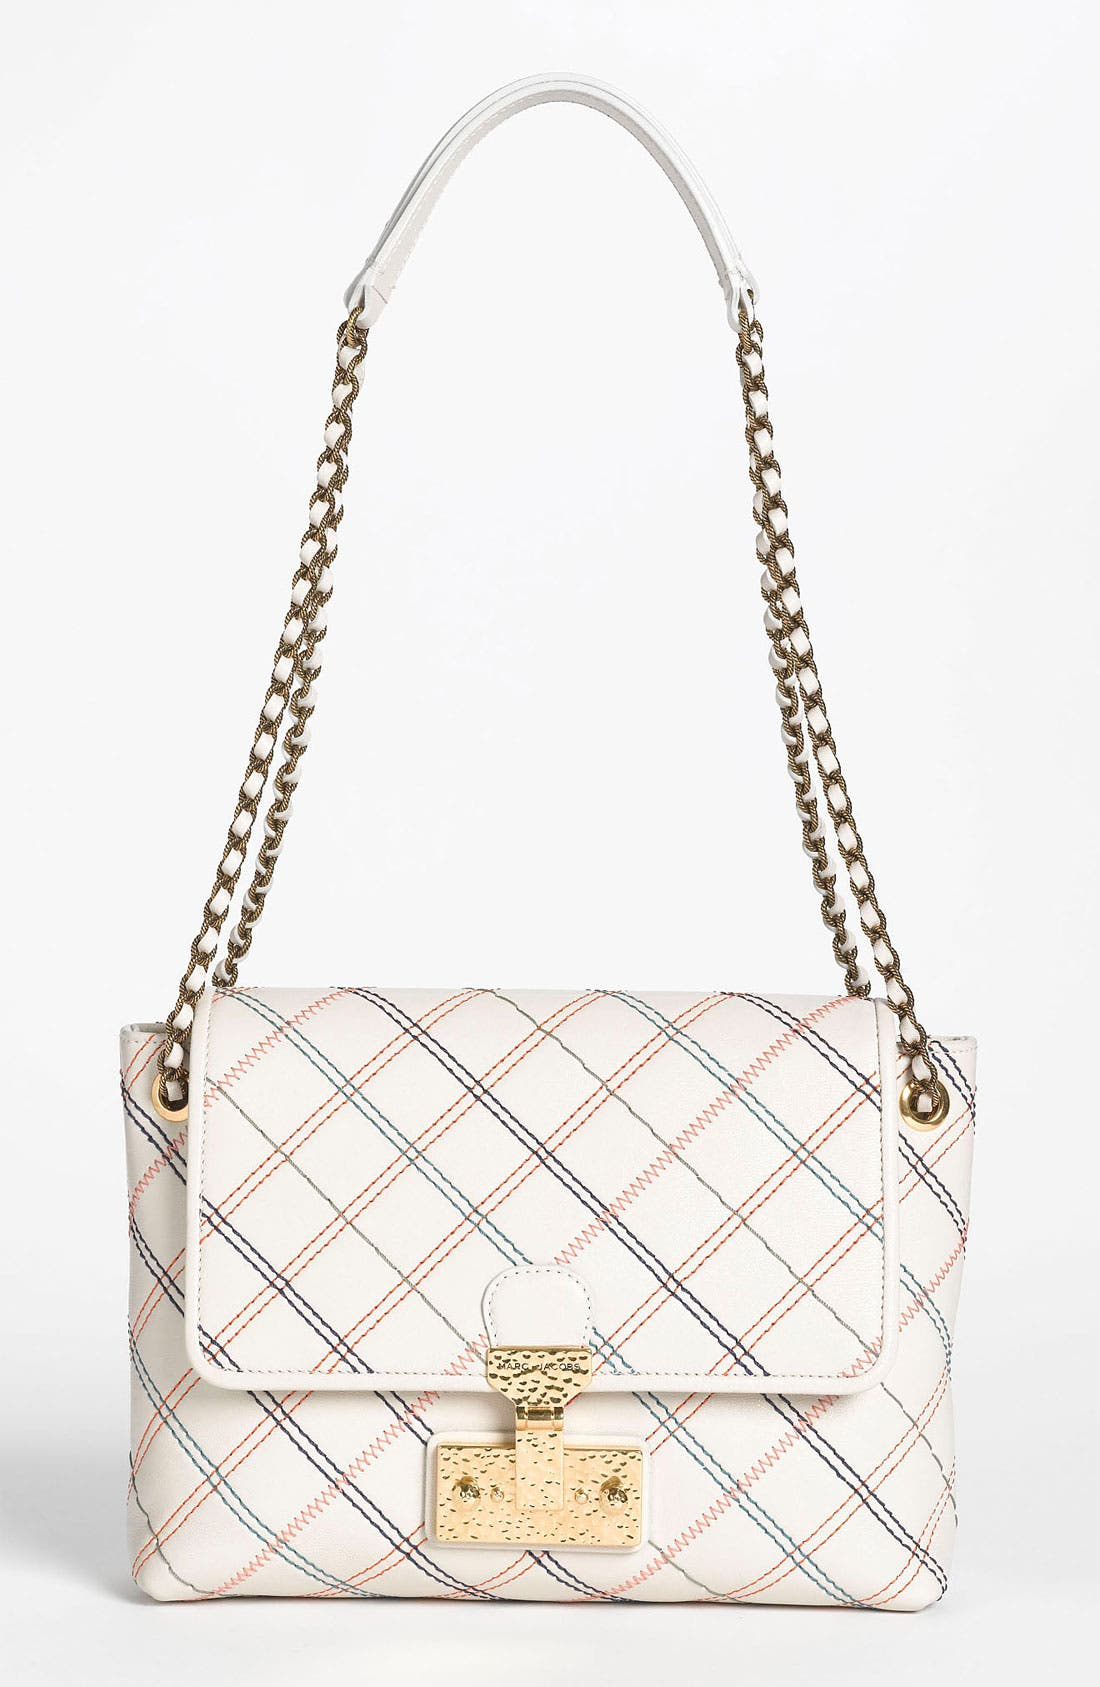 Alternate Image 1 Selected - MARC JACOBS 'Multistitch Single - Large' Leather Shoulder Bag